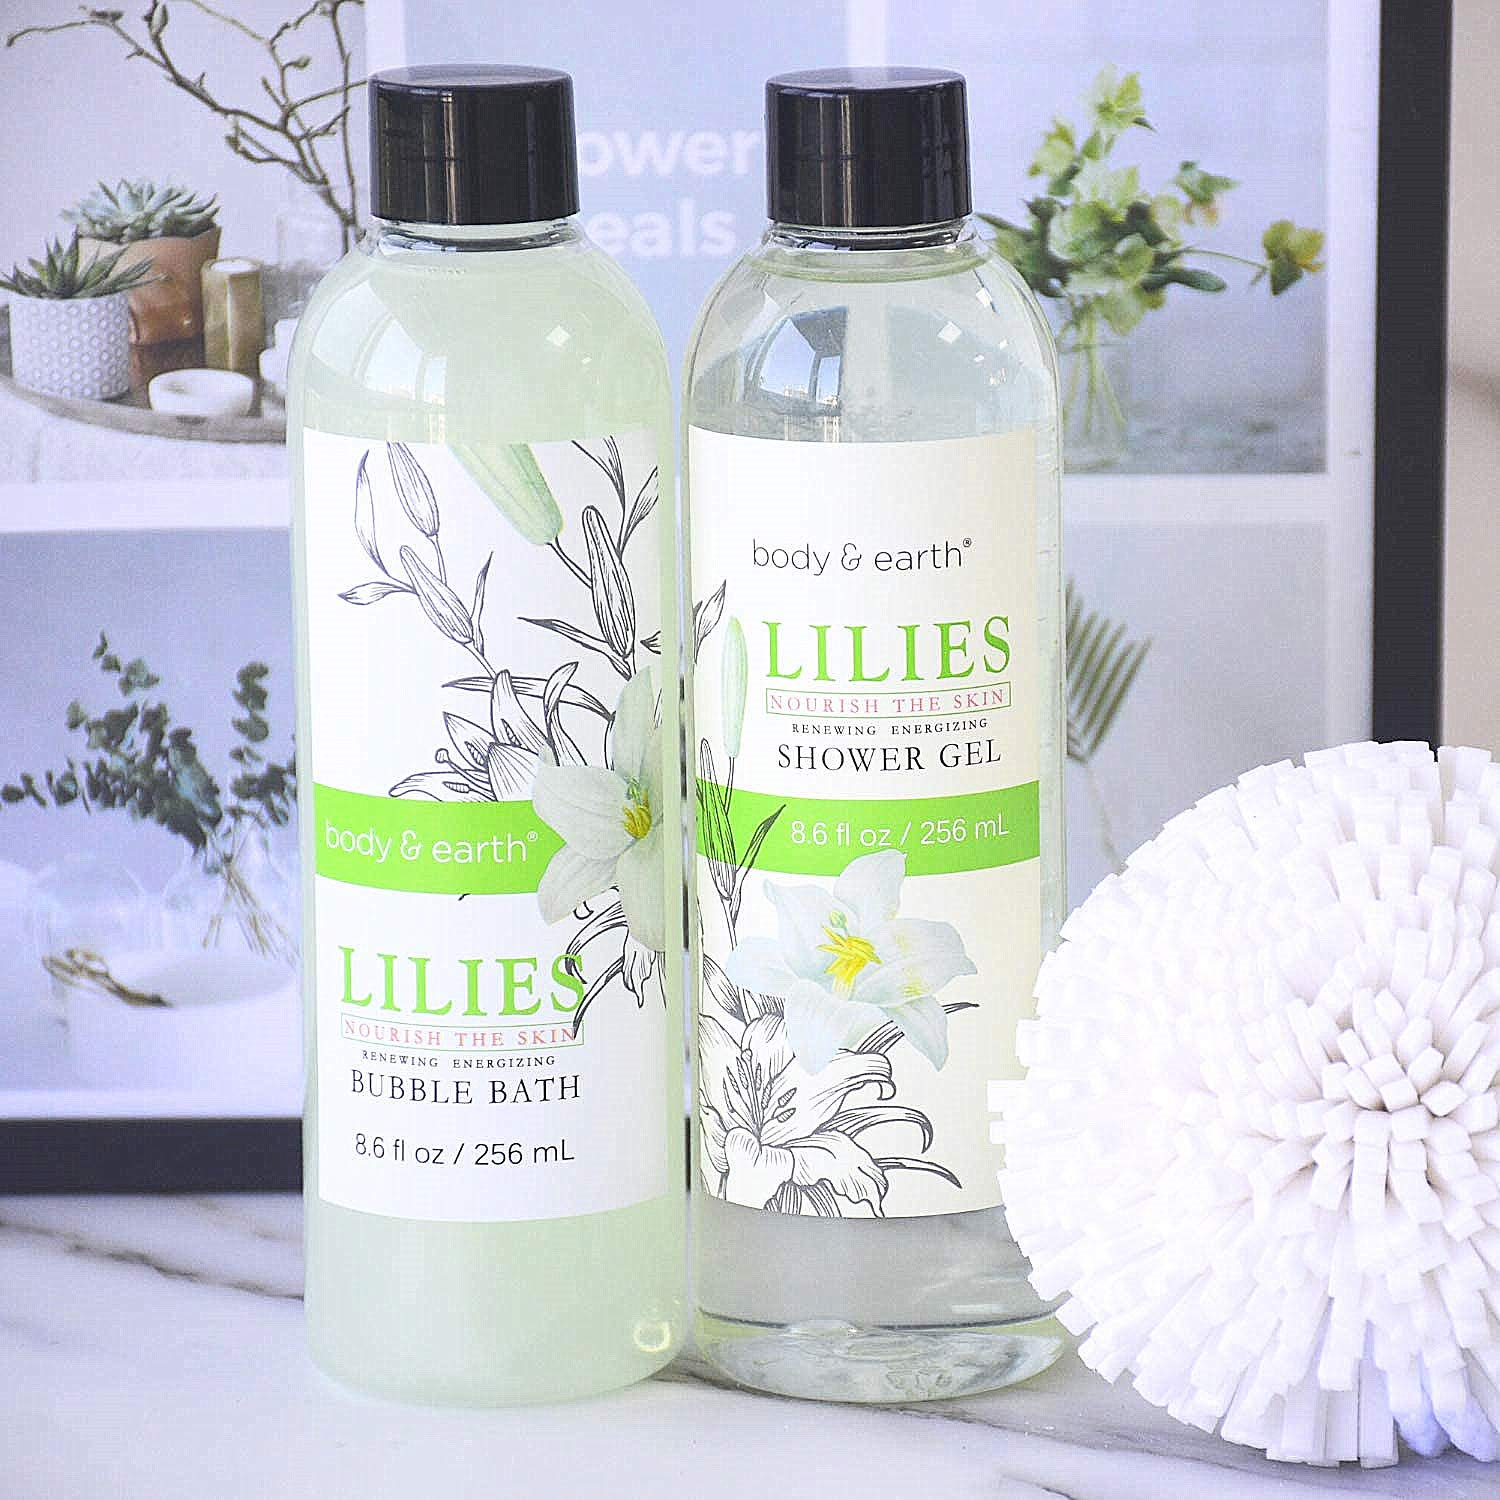 Gift Baskets for Women, Body & Earth Spa Gifts for Her, Lily 10pc Set, Best Gift Idea for Women : Beauty